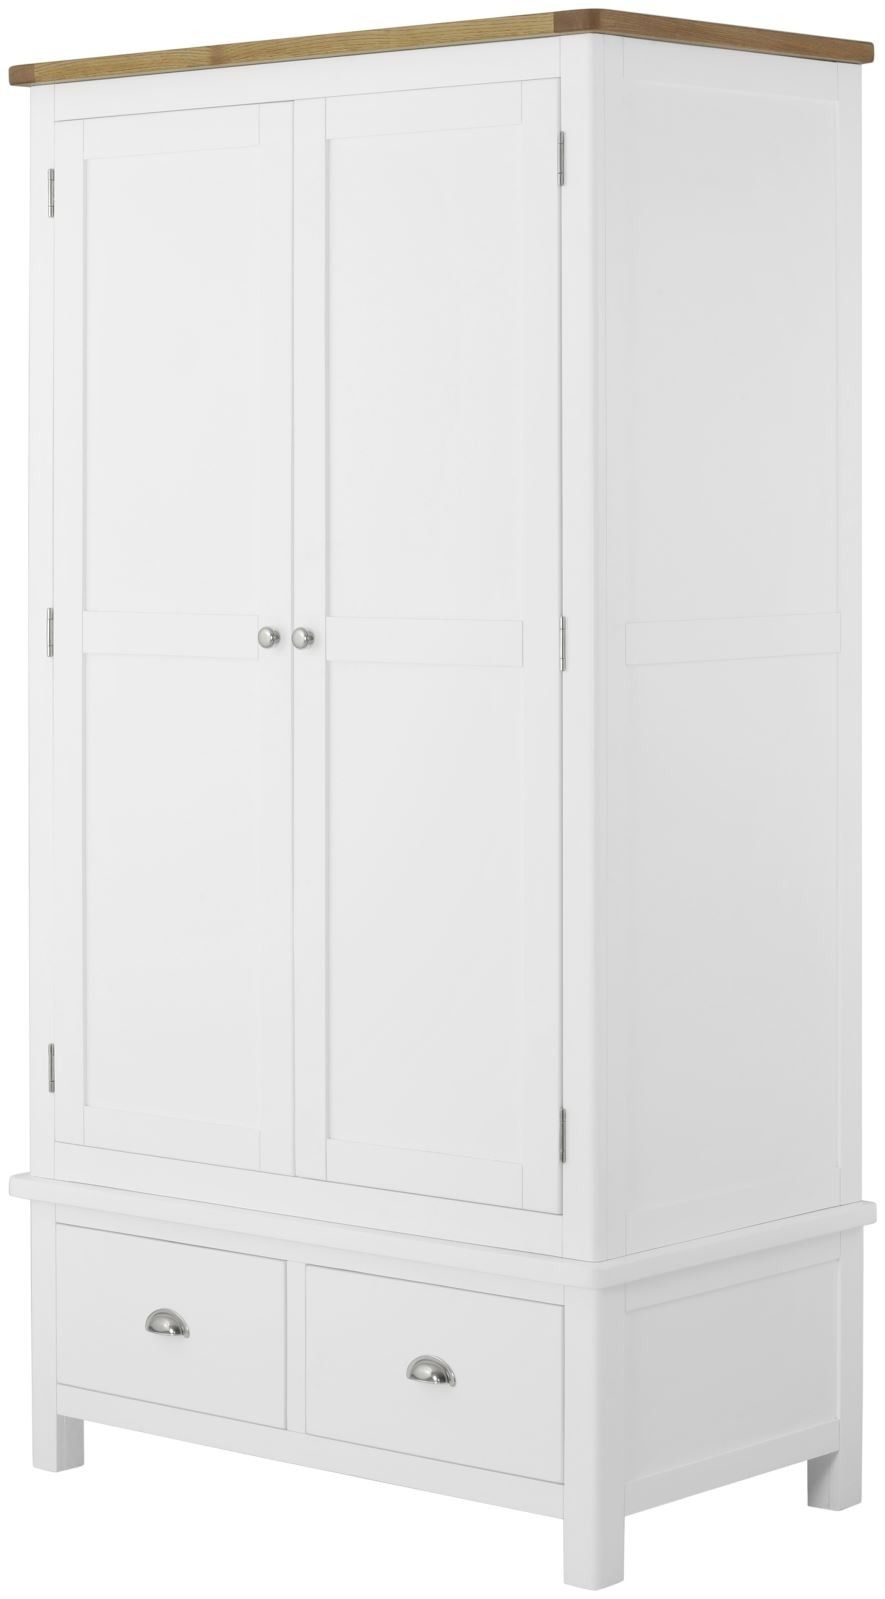 Stratton White Wardrobe Gents